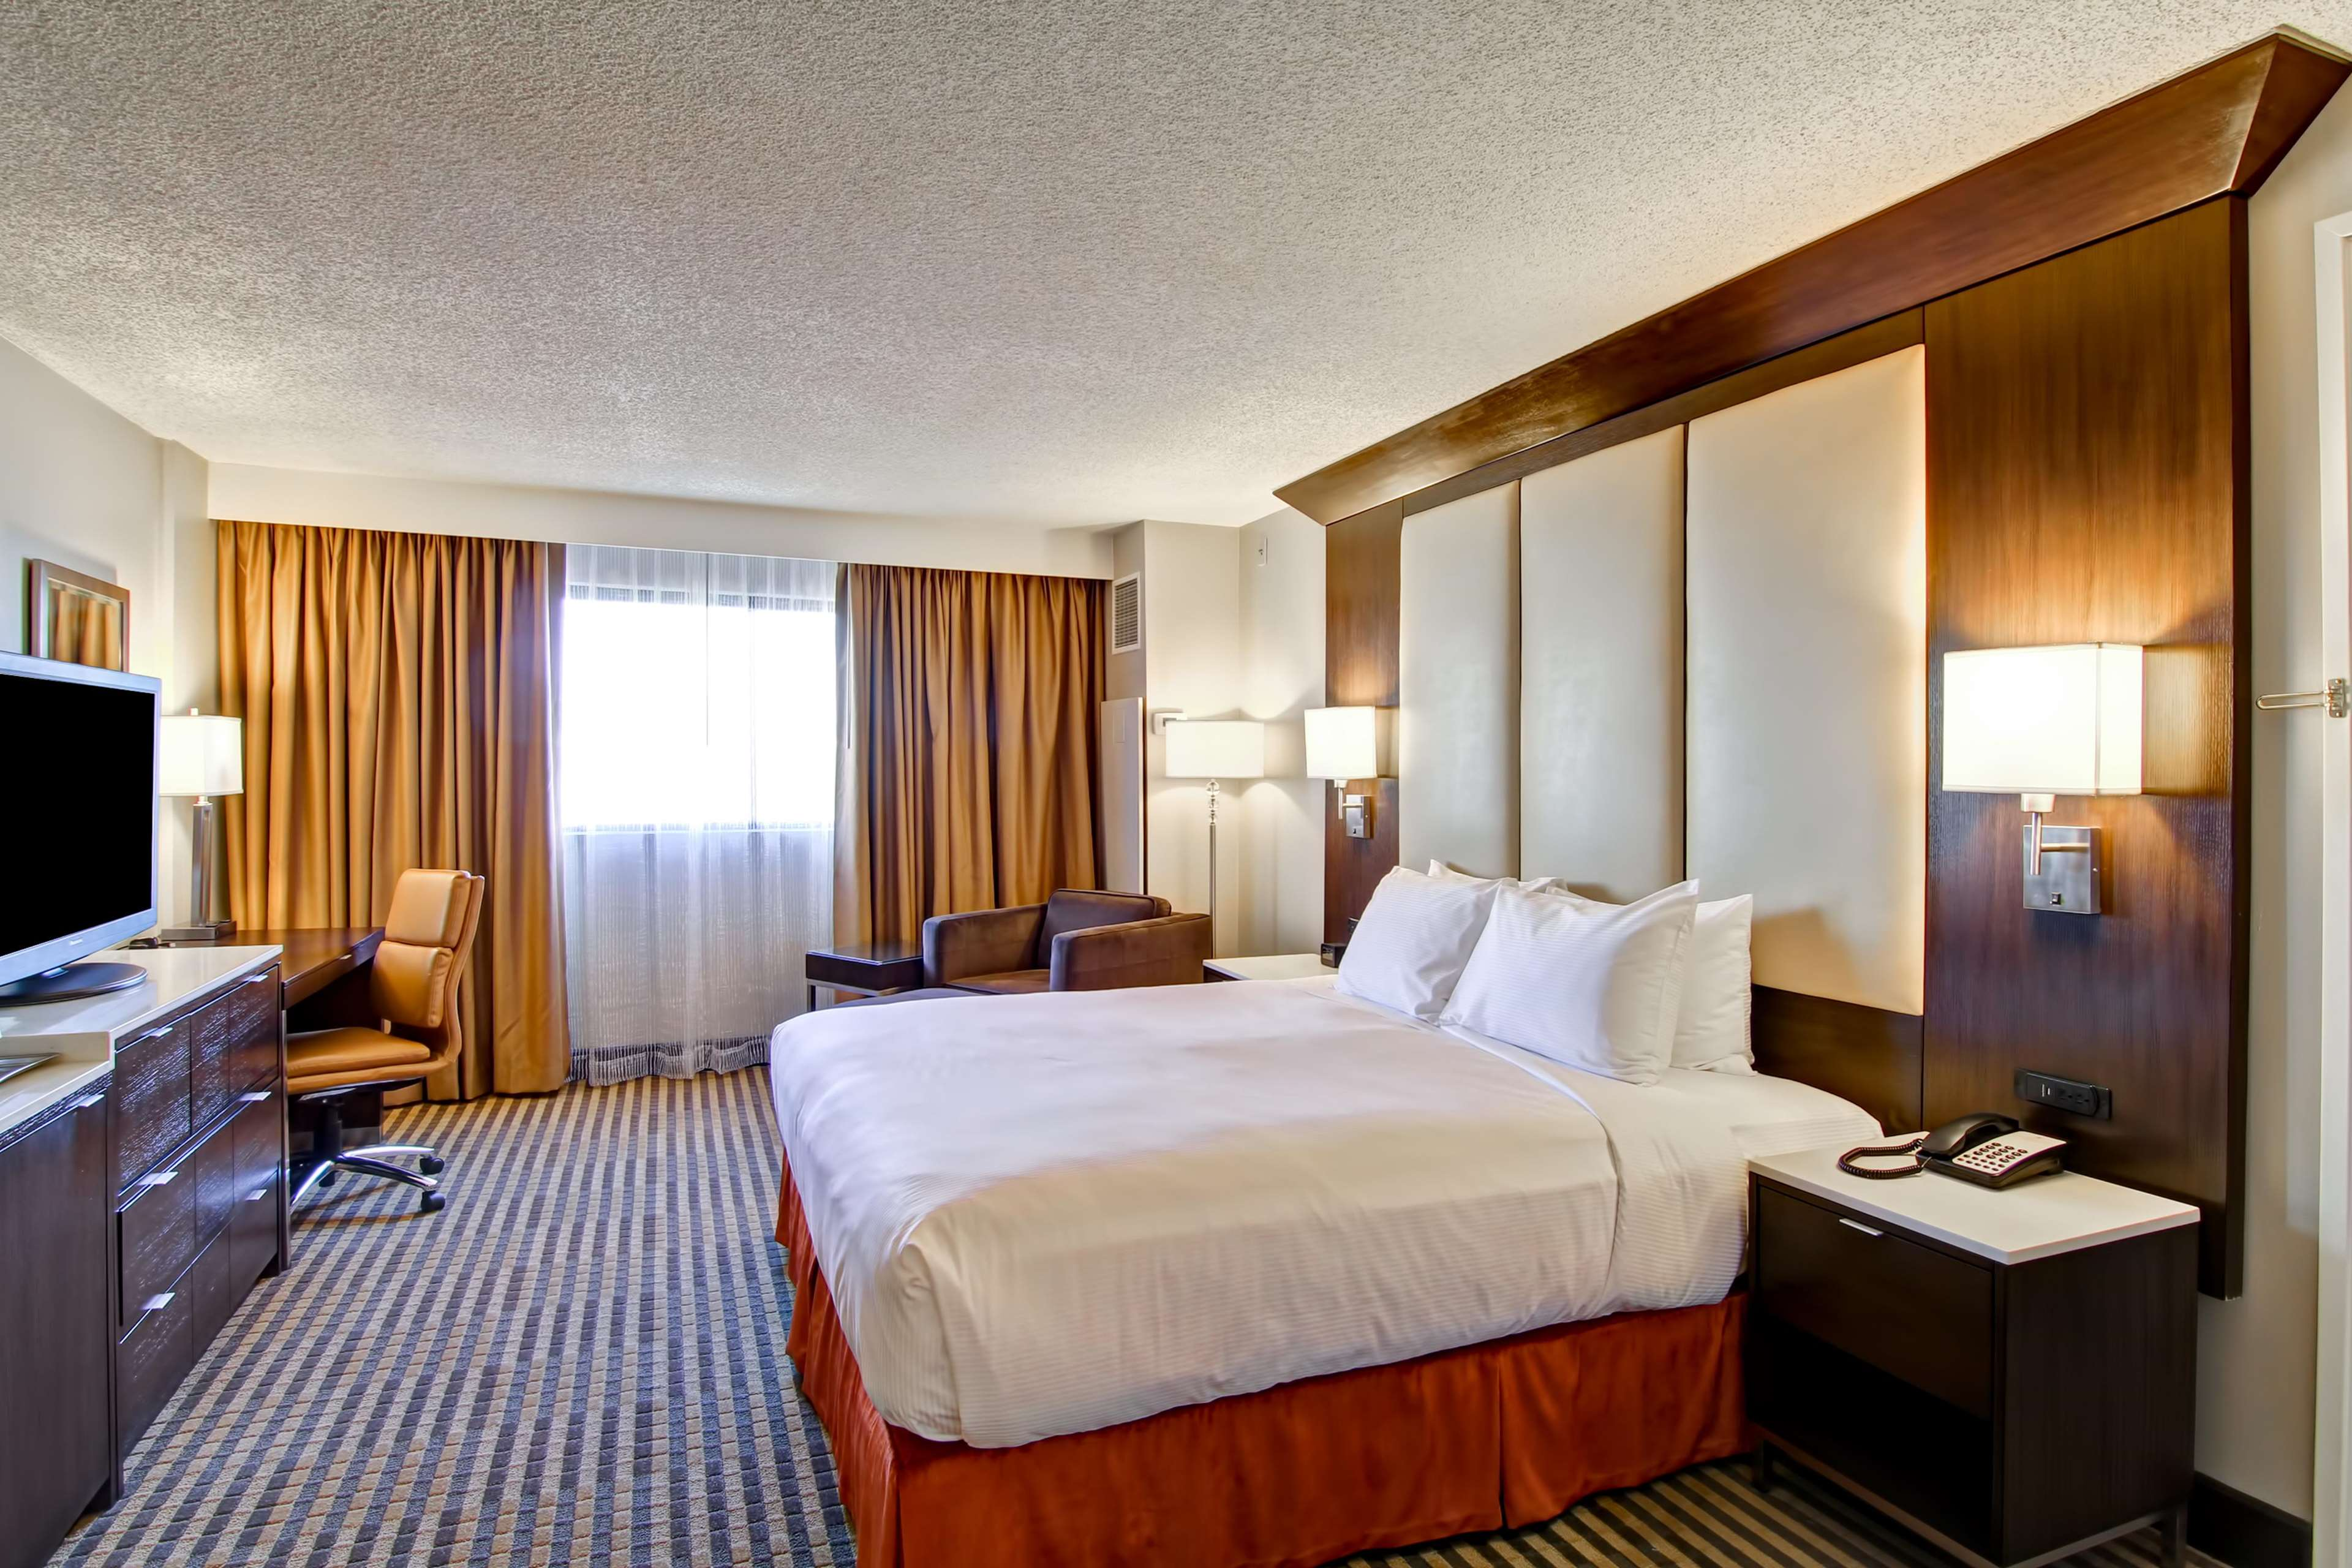 DoubleTree by Hilton Hotel Pleasanton at the Club image 37